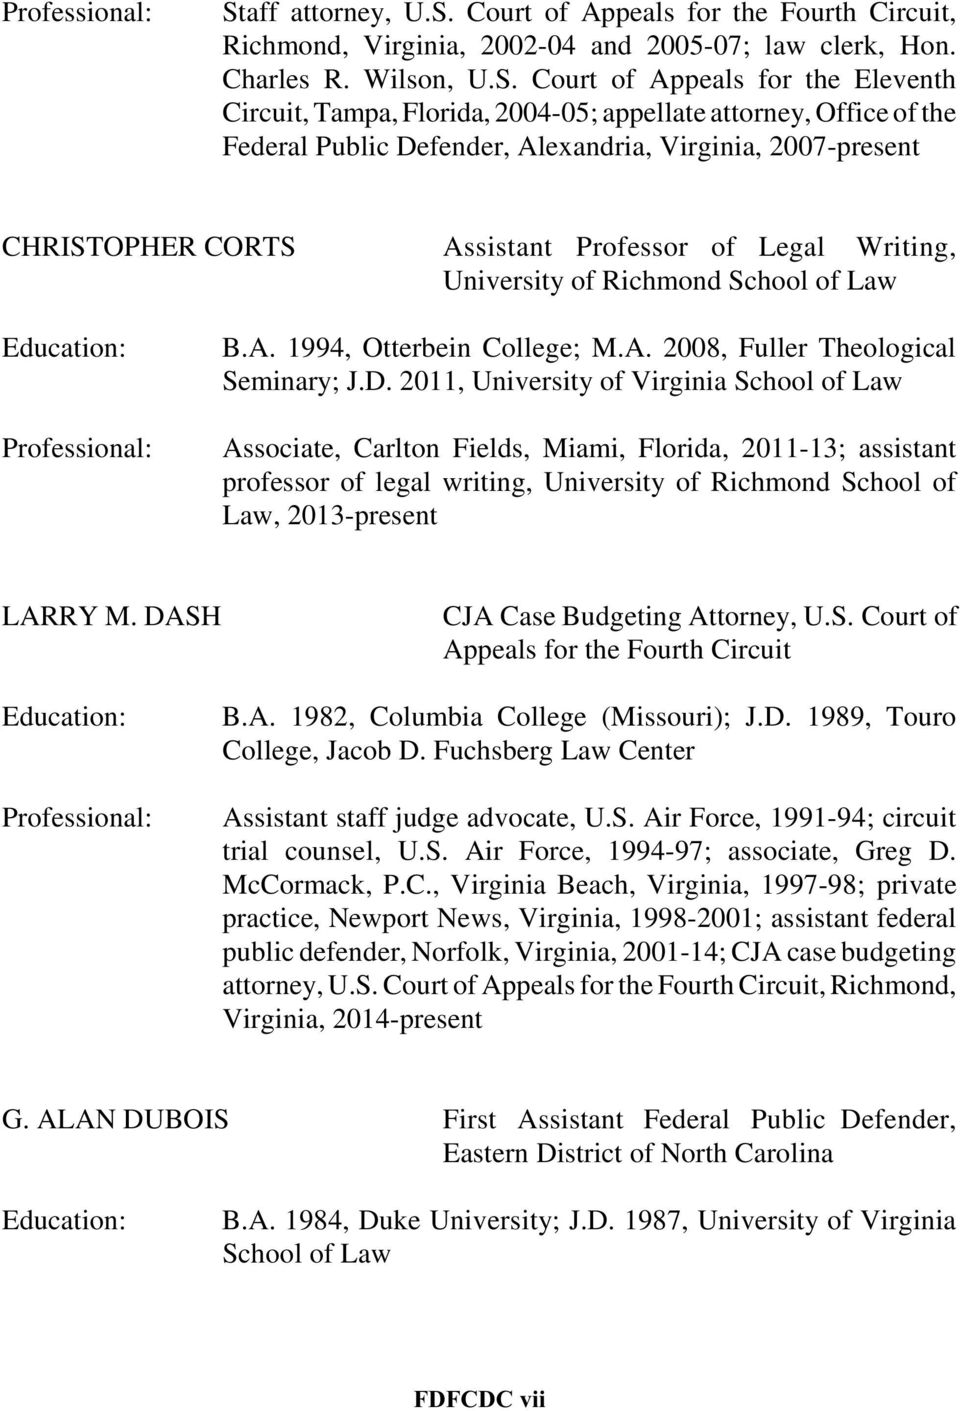 Court of Appeals for the Fourth Circuit, Richmond, Virginia, 2002-04 and 2005-07; law clerk, Hon. Charles R. Wilson, U.S.